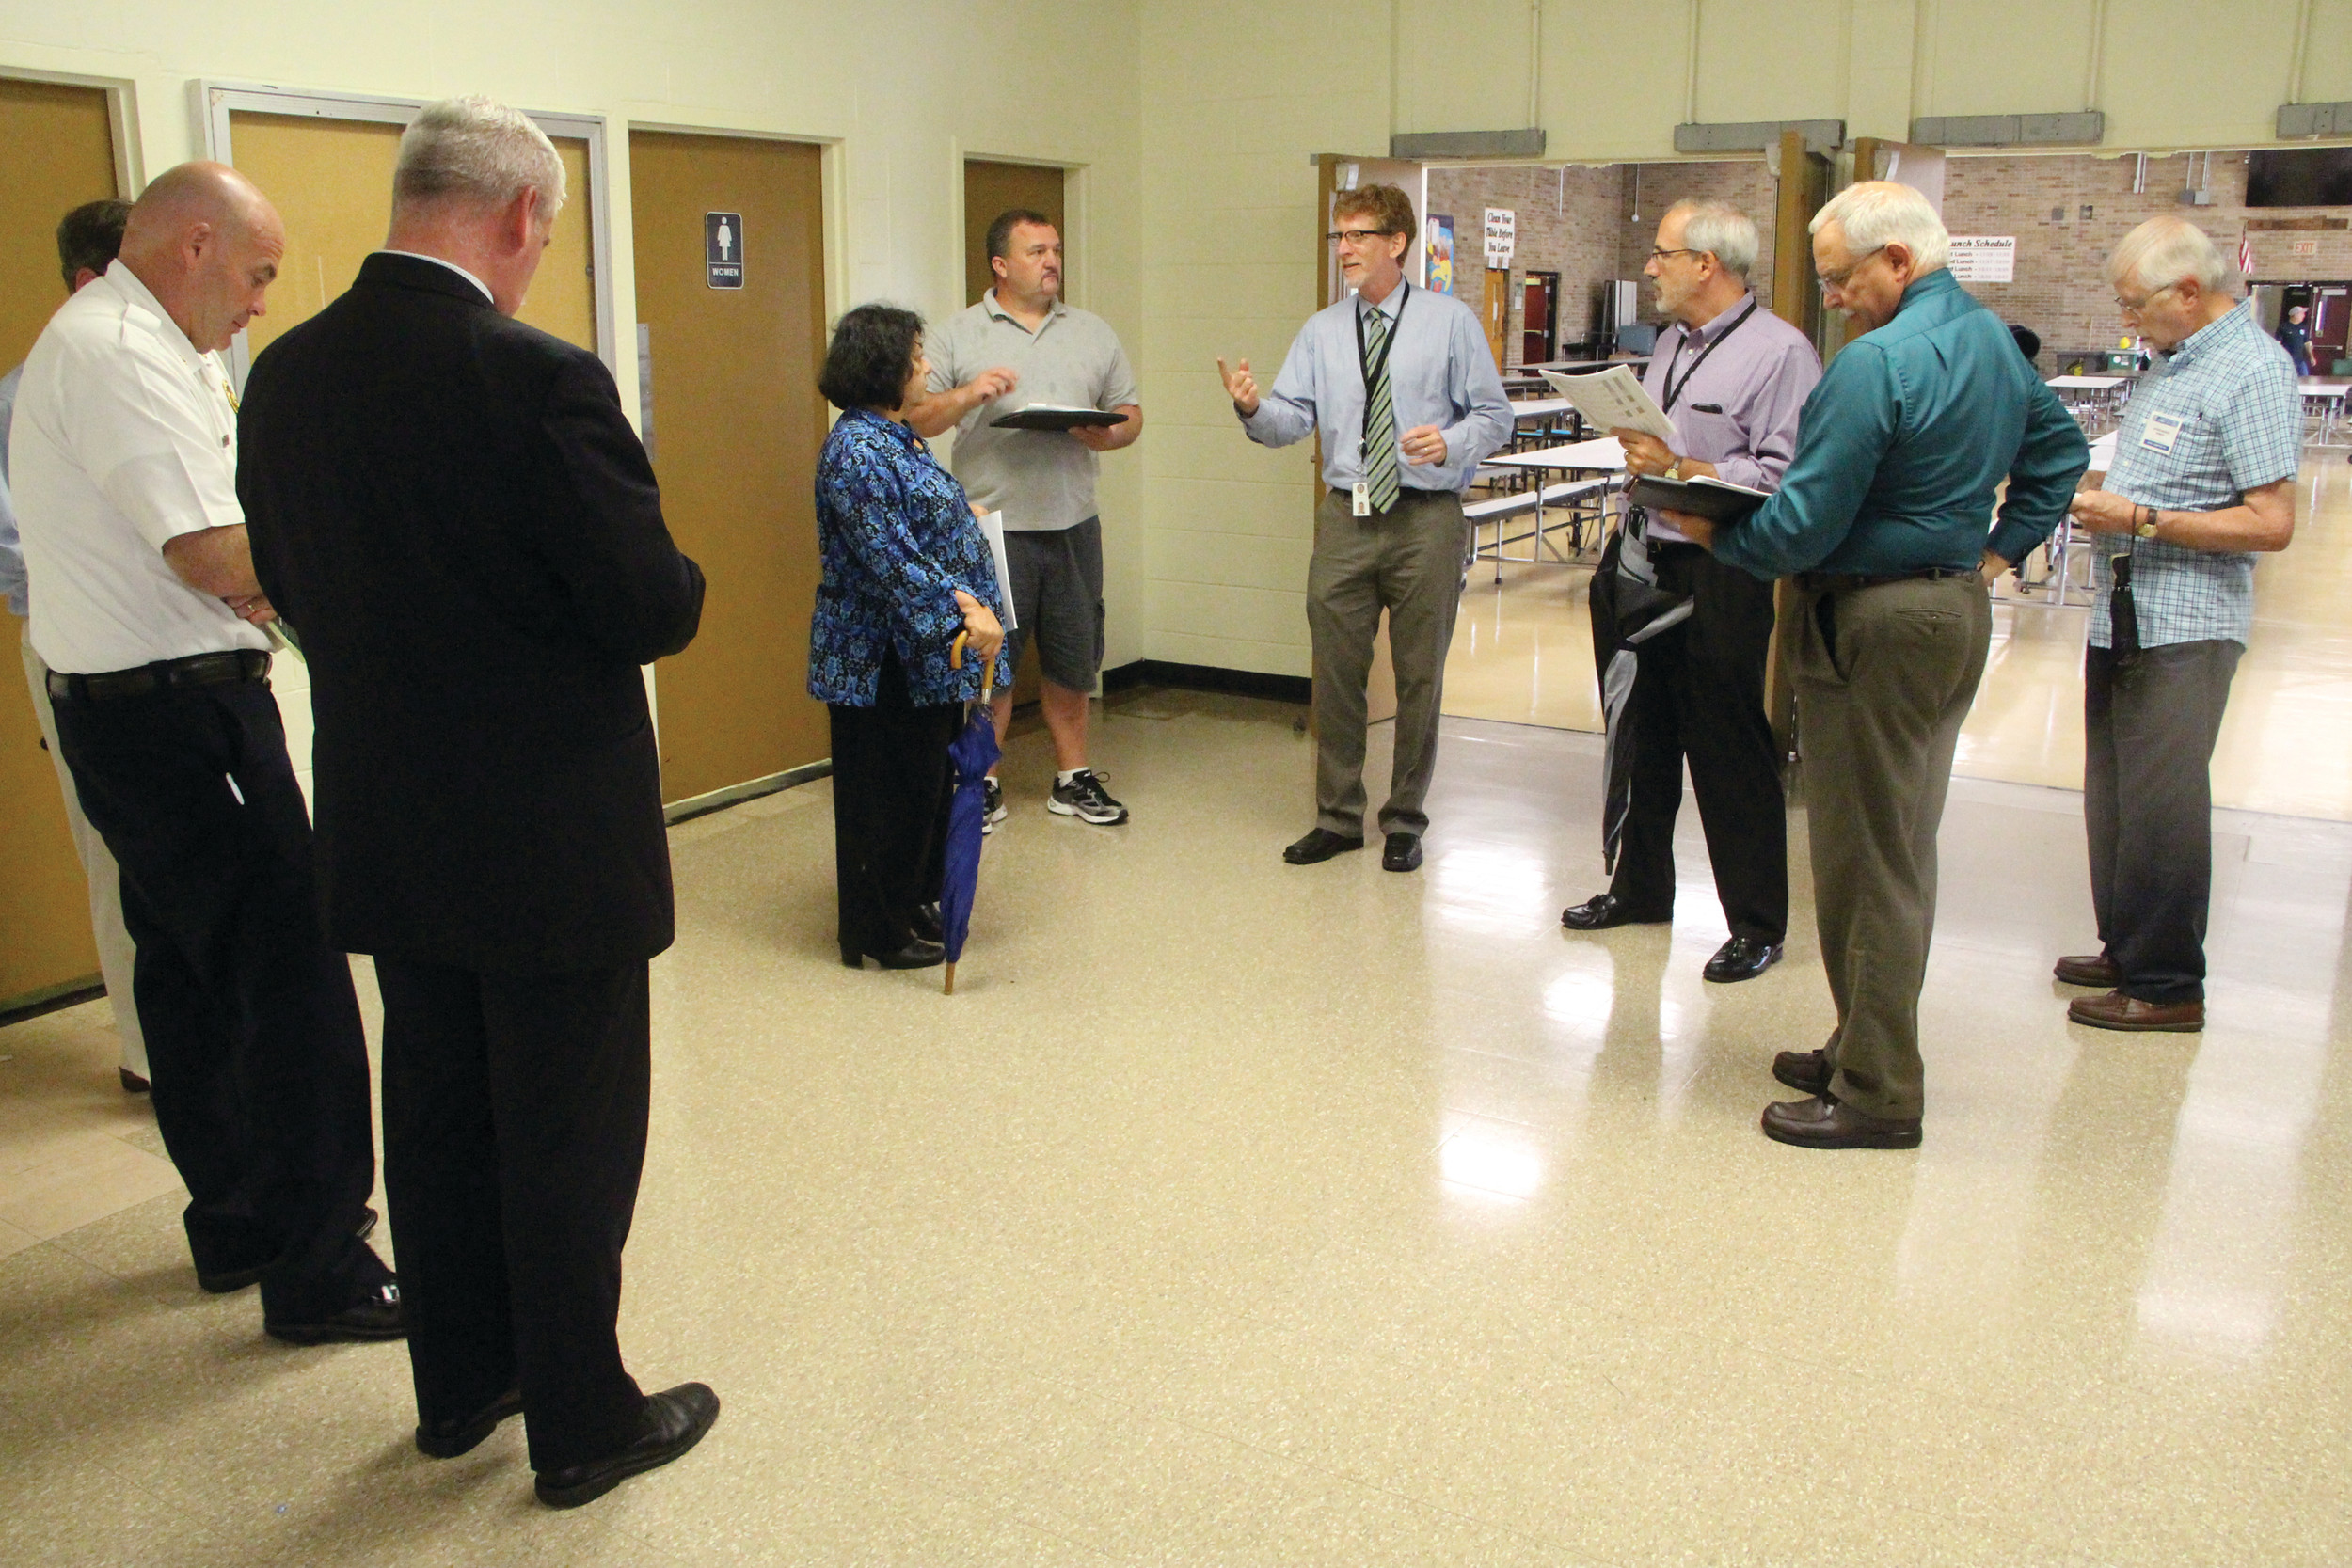 WALKABOUT: Superintendent Philip Thornton leads the group conducting a walkthrough of Pilgrim High School on Wednesday.